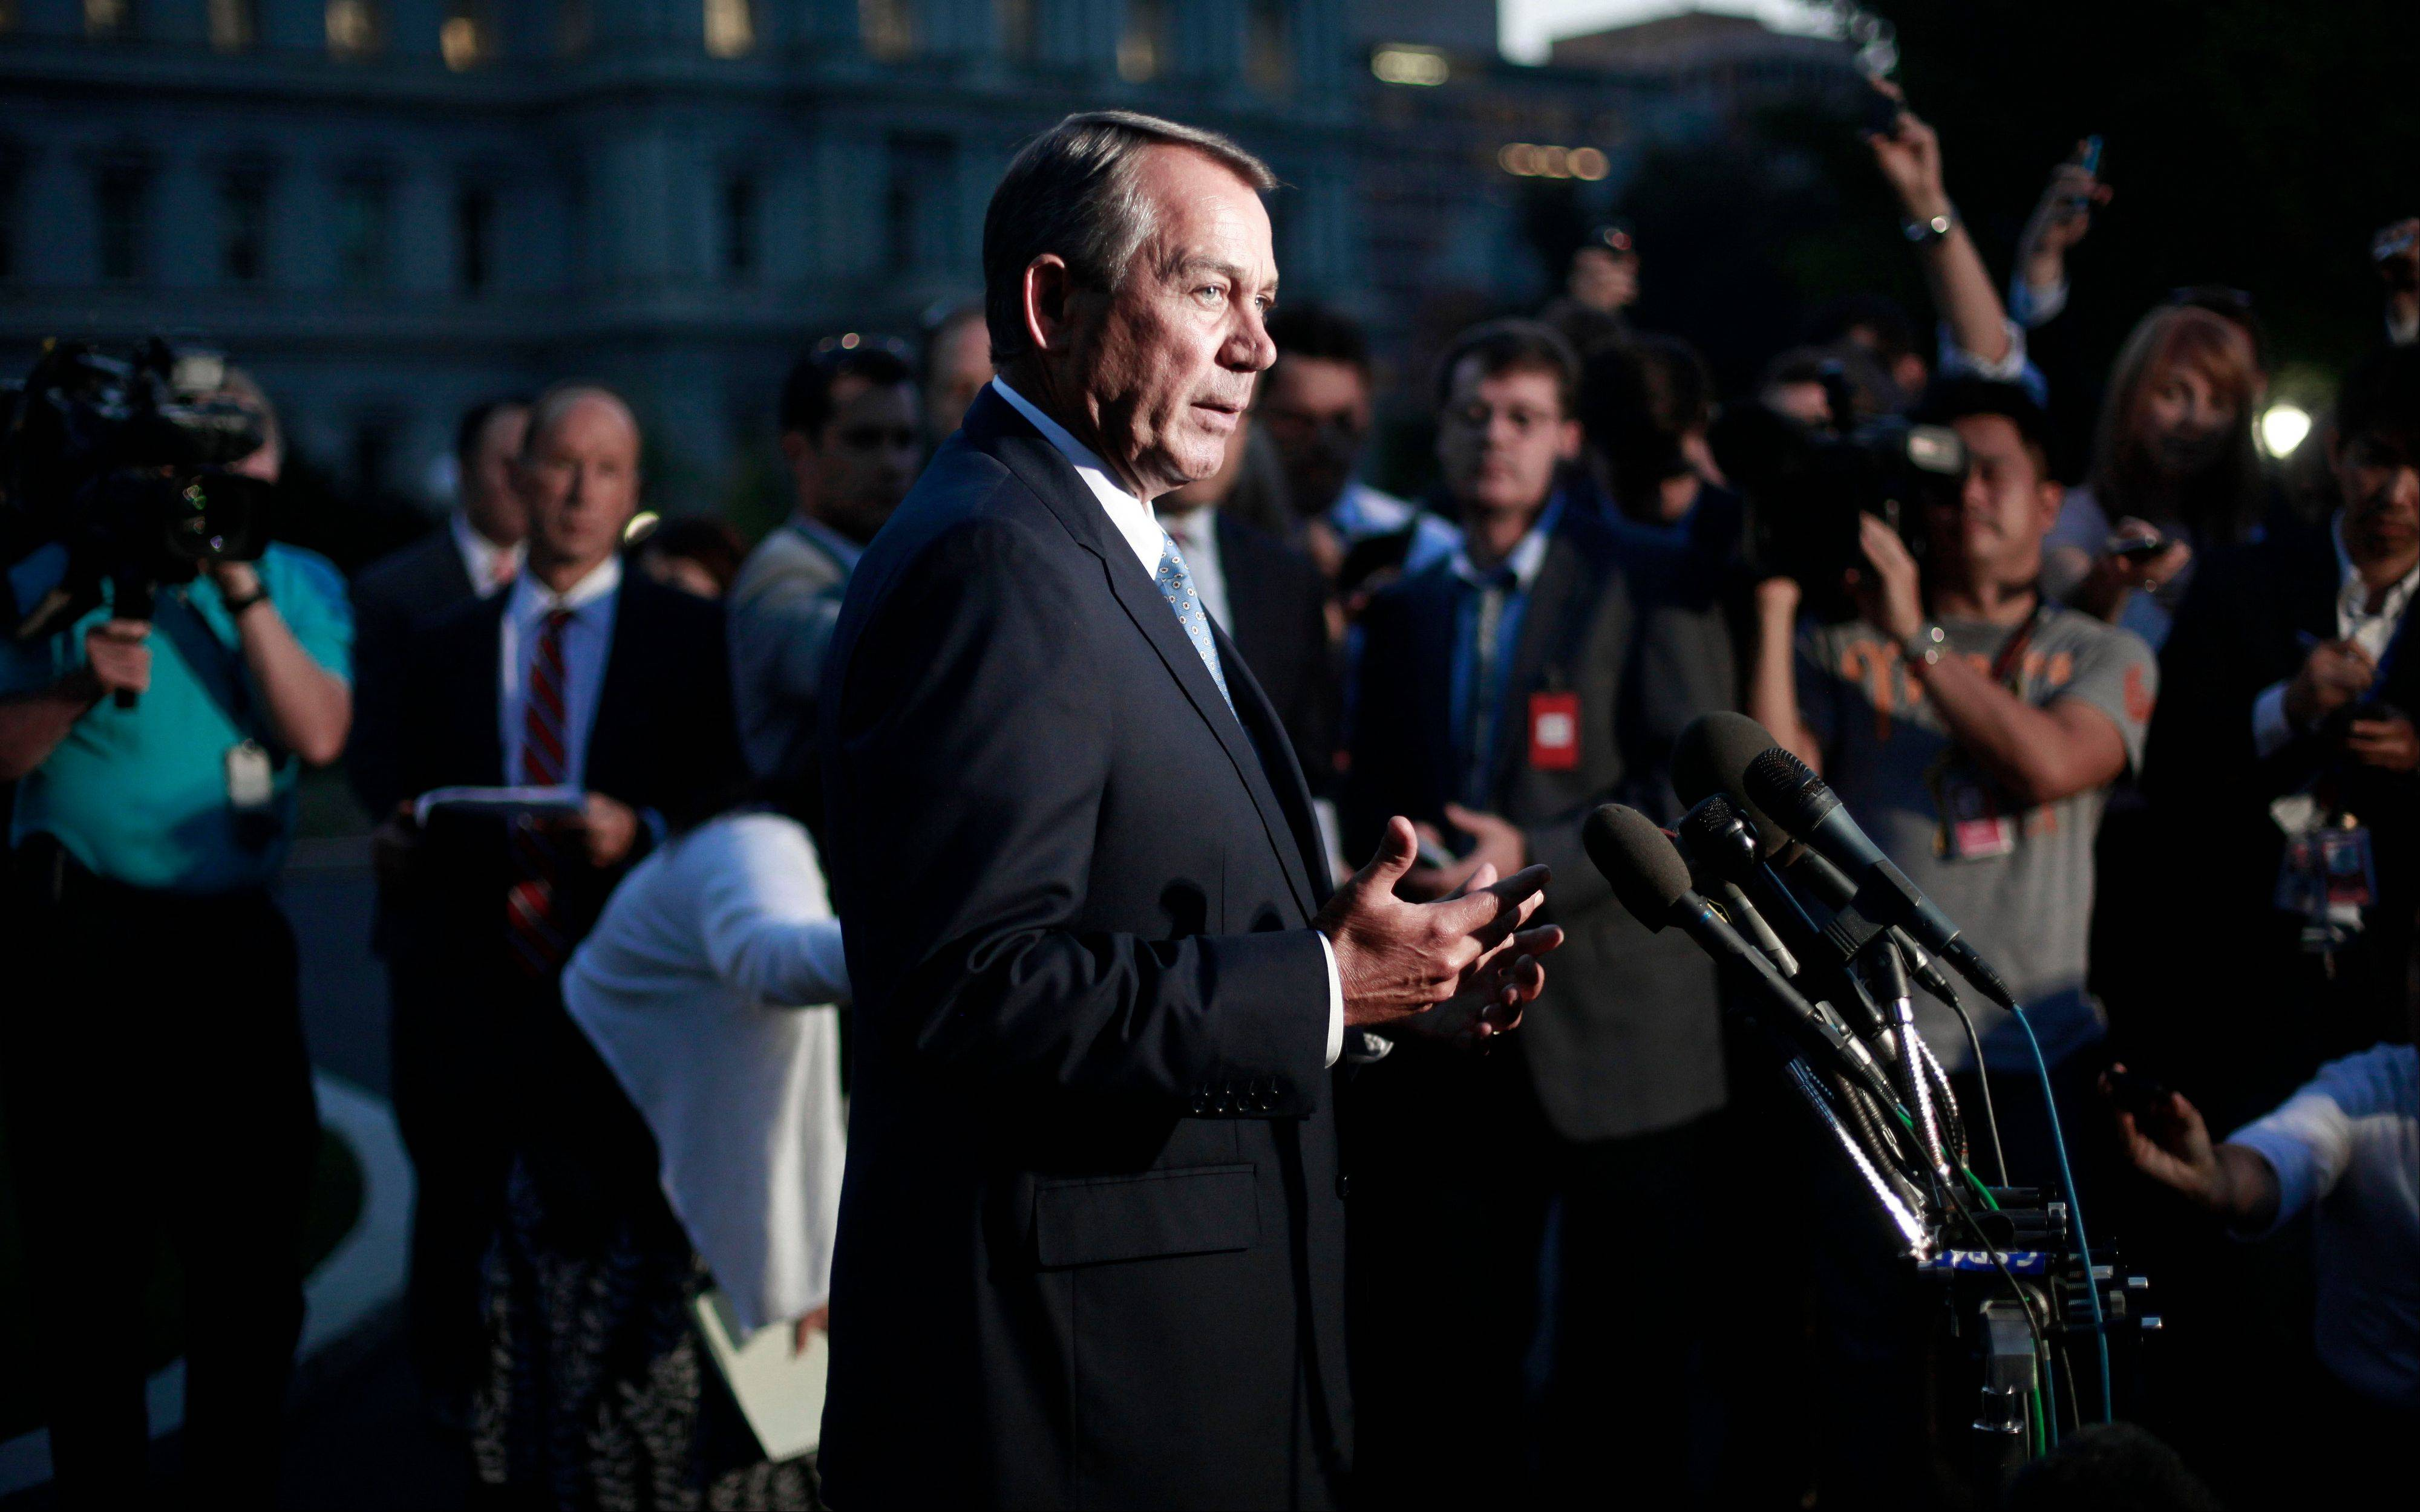 House Speaker John Boehner speaks to members of the media after meeting with President Barack Obama at the White House on Wednesday. Republicans insisted they wanted to shut down the nation's 3-year-old health care overhaul, not the government. They got the opposite.